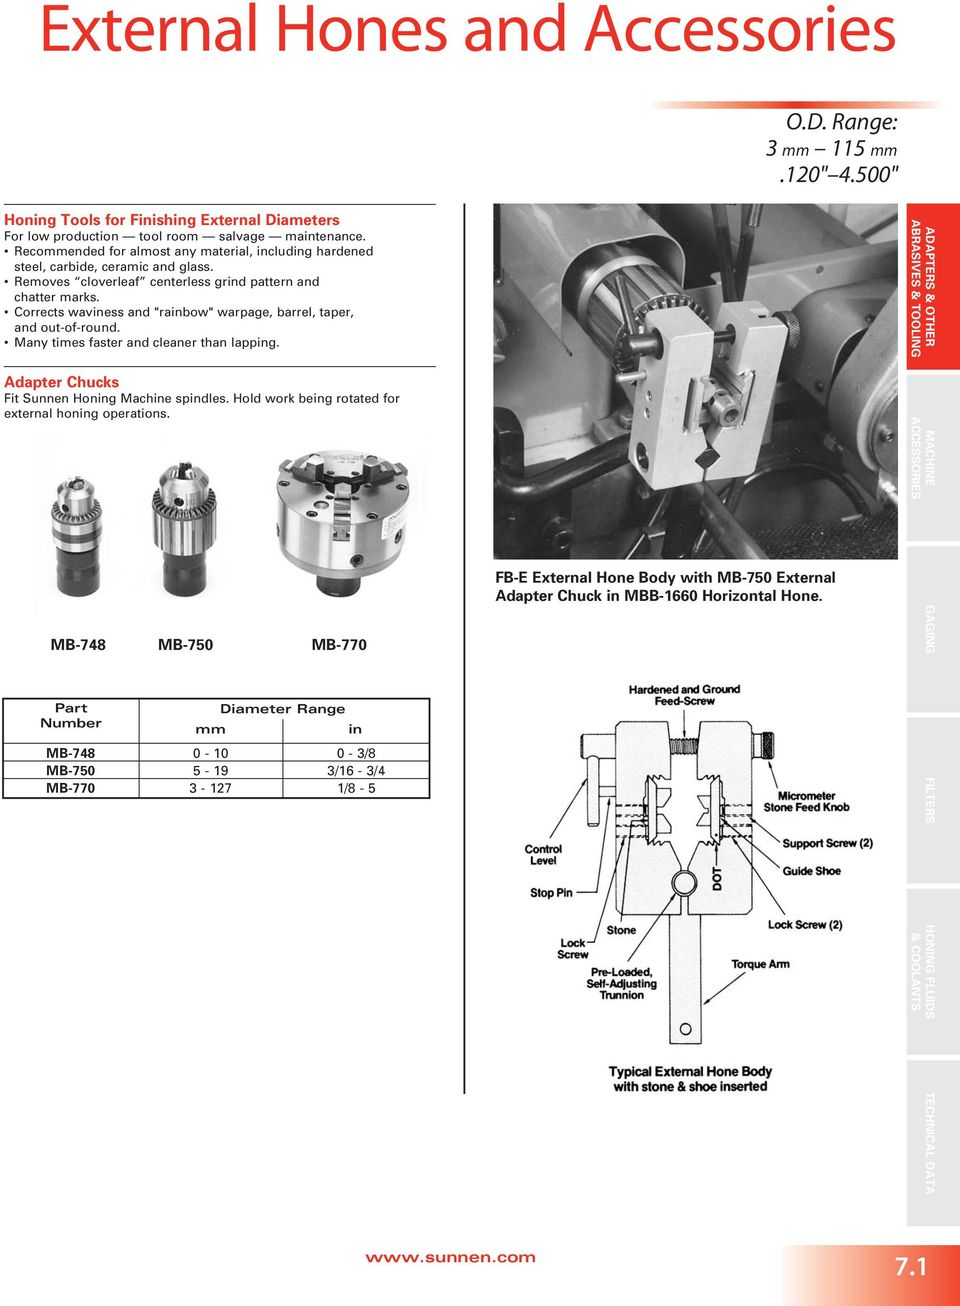 External Hones and Accessories - PDF